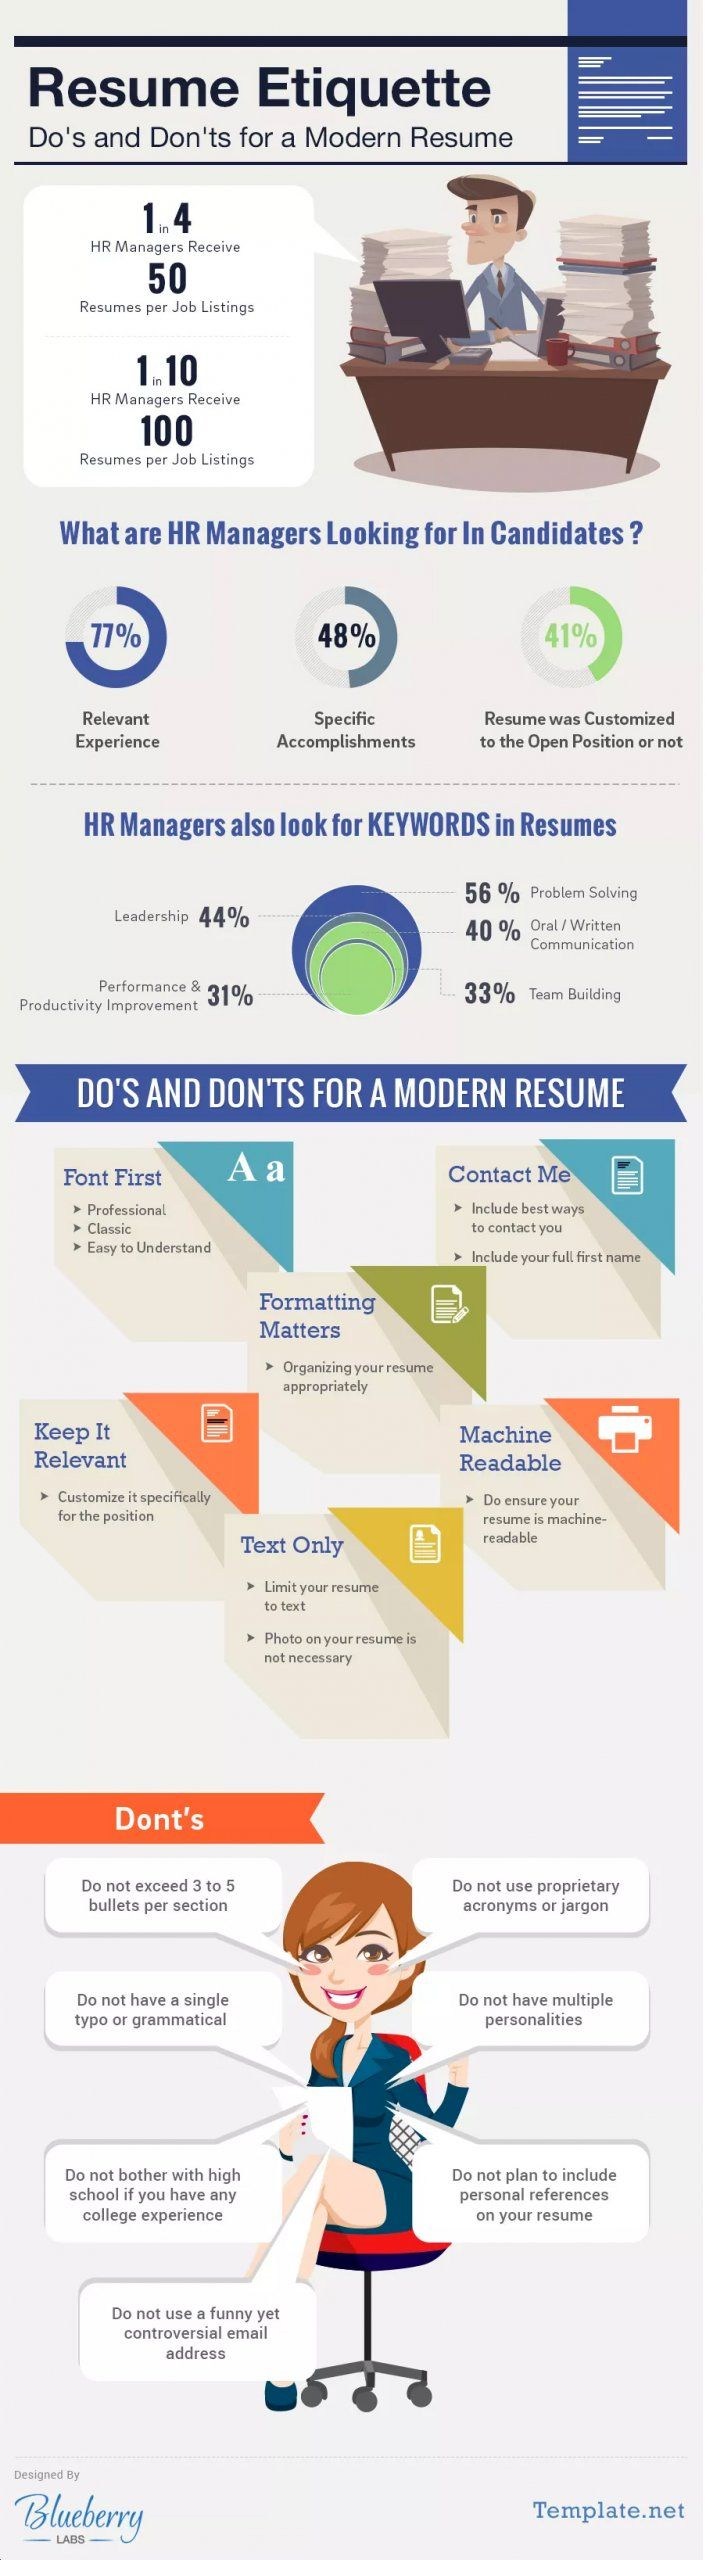 Hereu0027s What The Modern Resume Should Look Like. I Love That They Pointed  Out Using